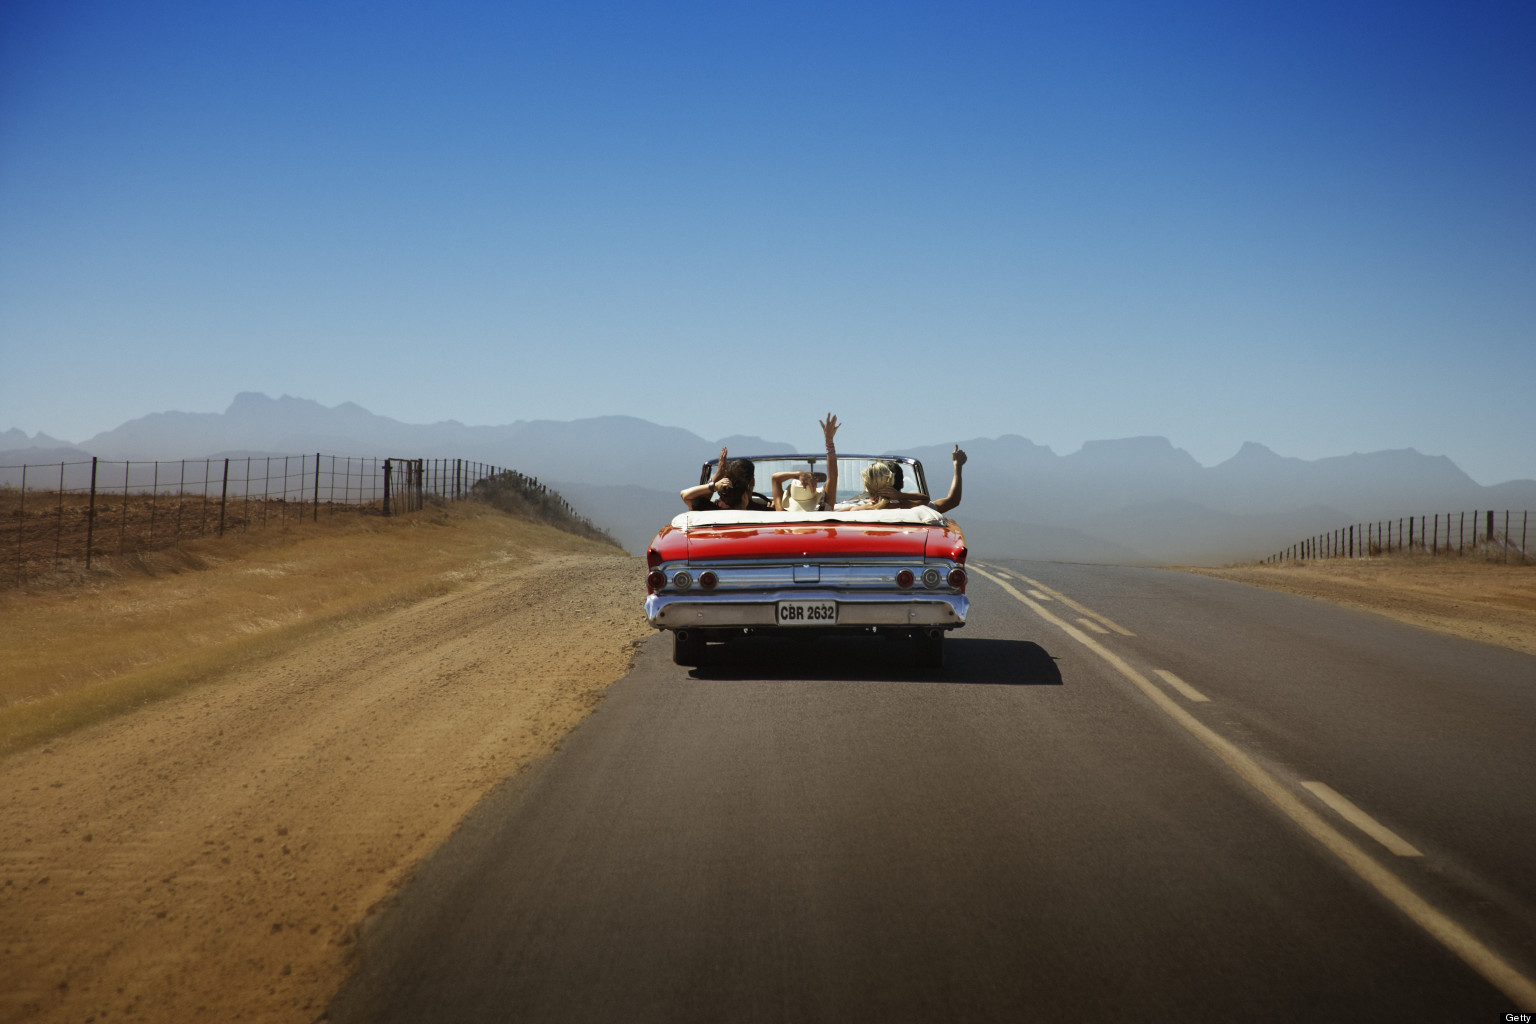 The American Road Trip: A Retrospective